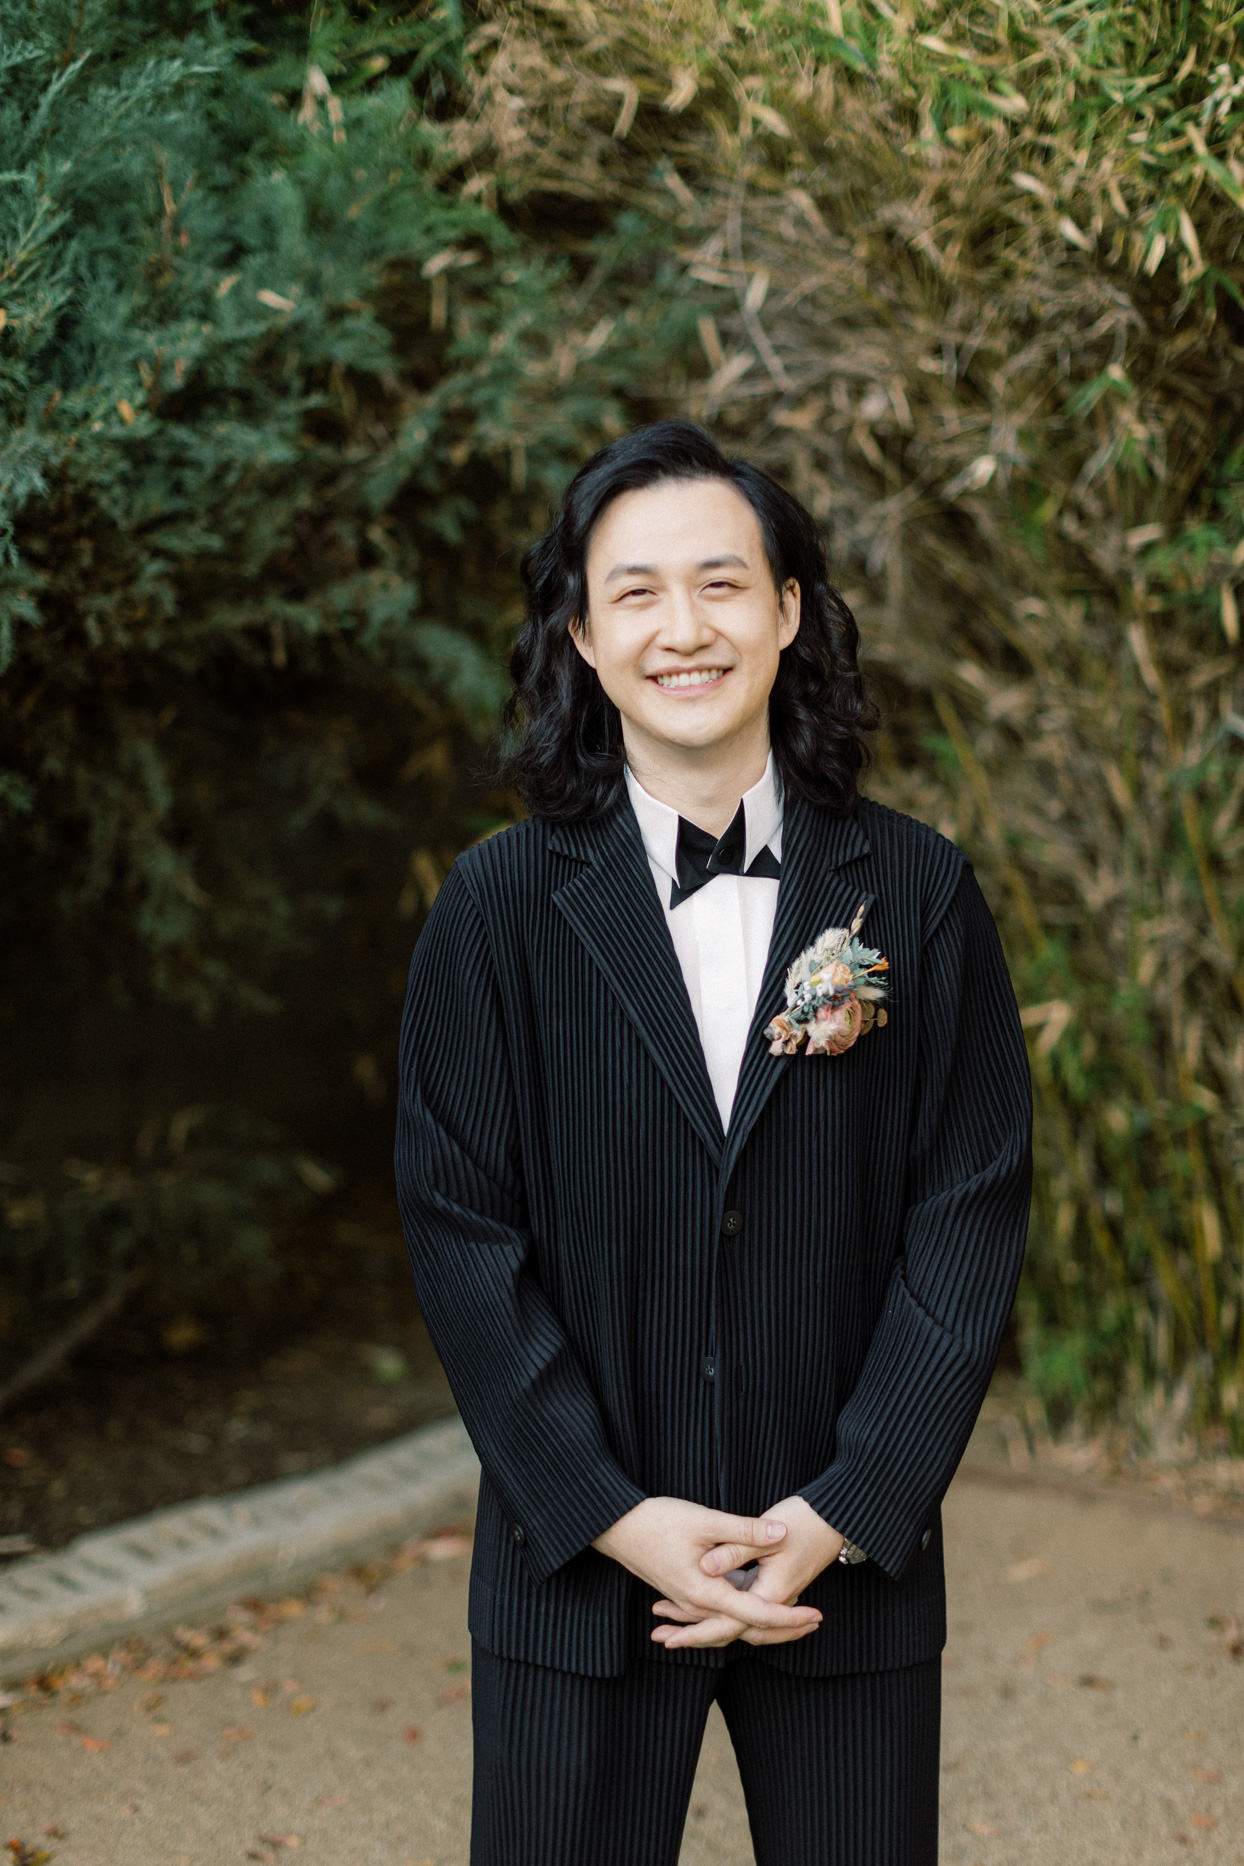 groom in black stripped suit with boutonniere